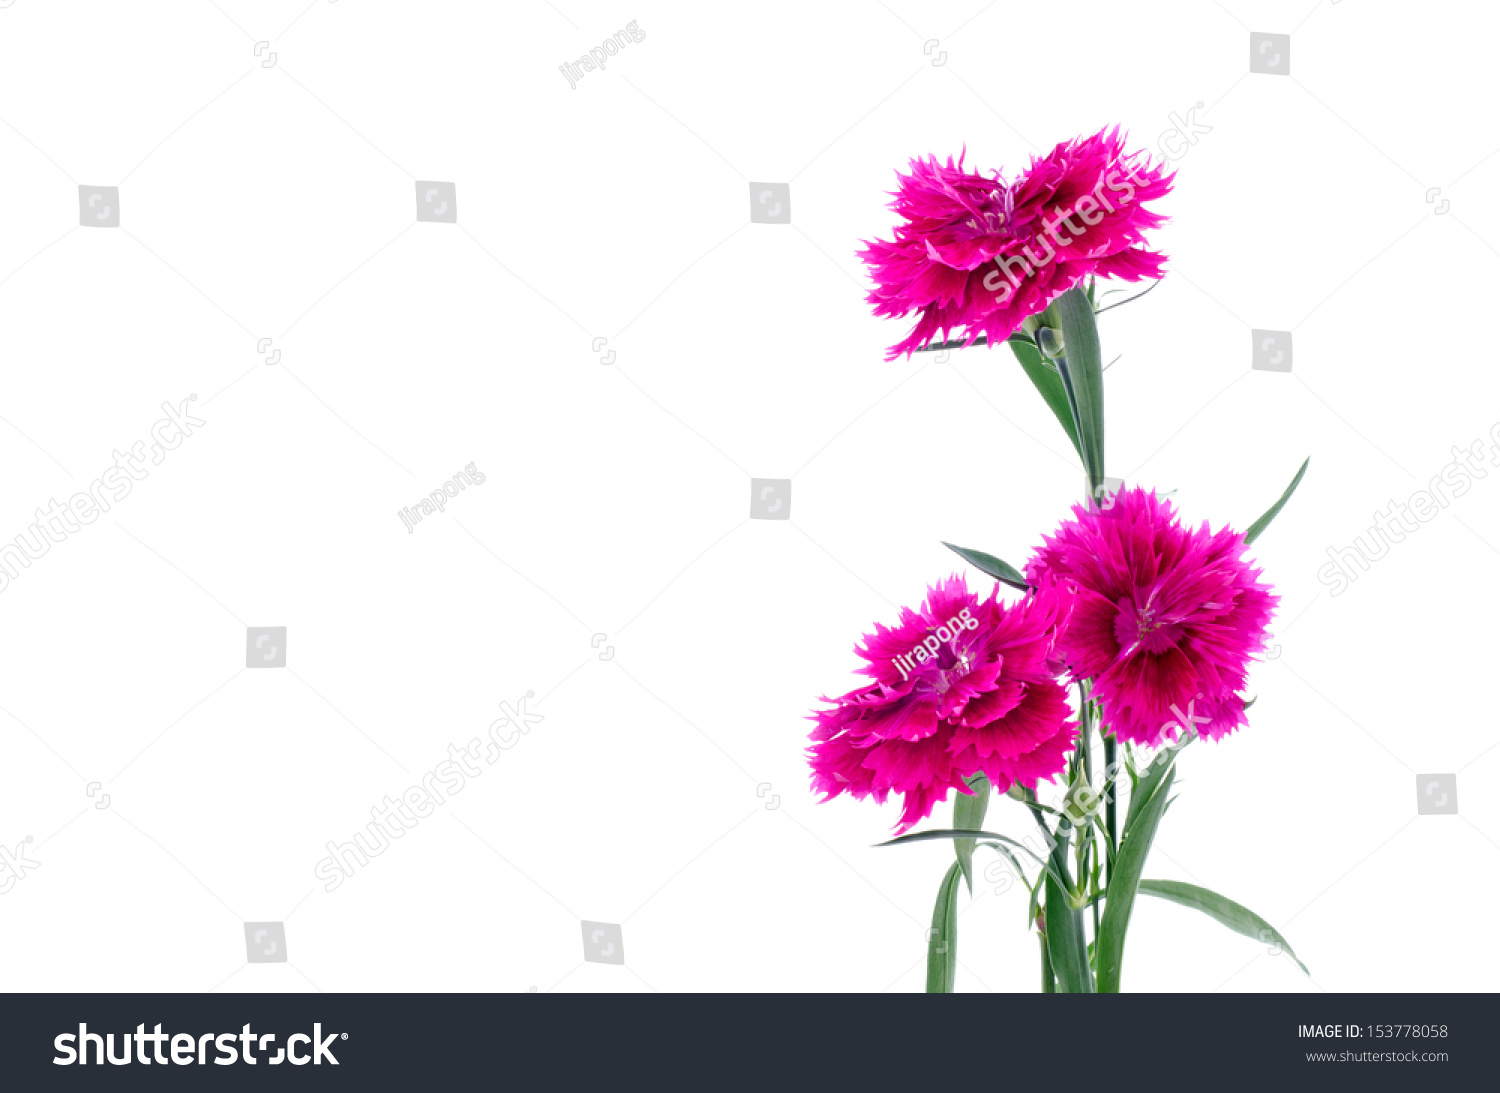 Dianthus Sweet William Flower On White Stock Photo Royalty Free